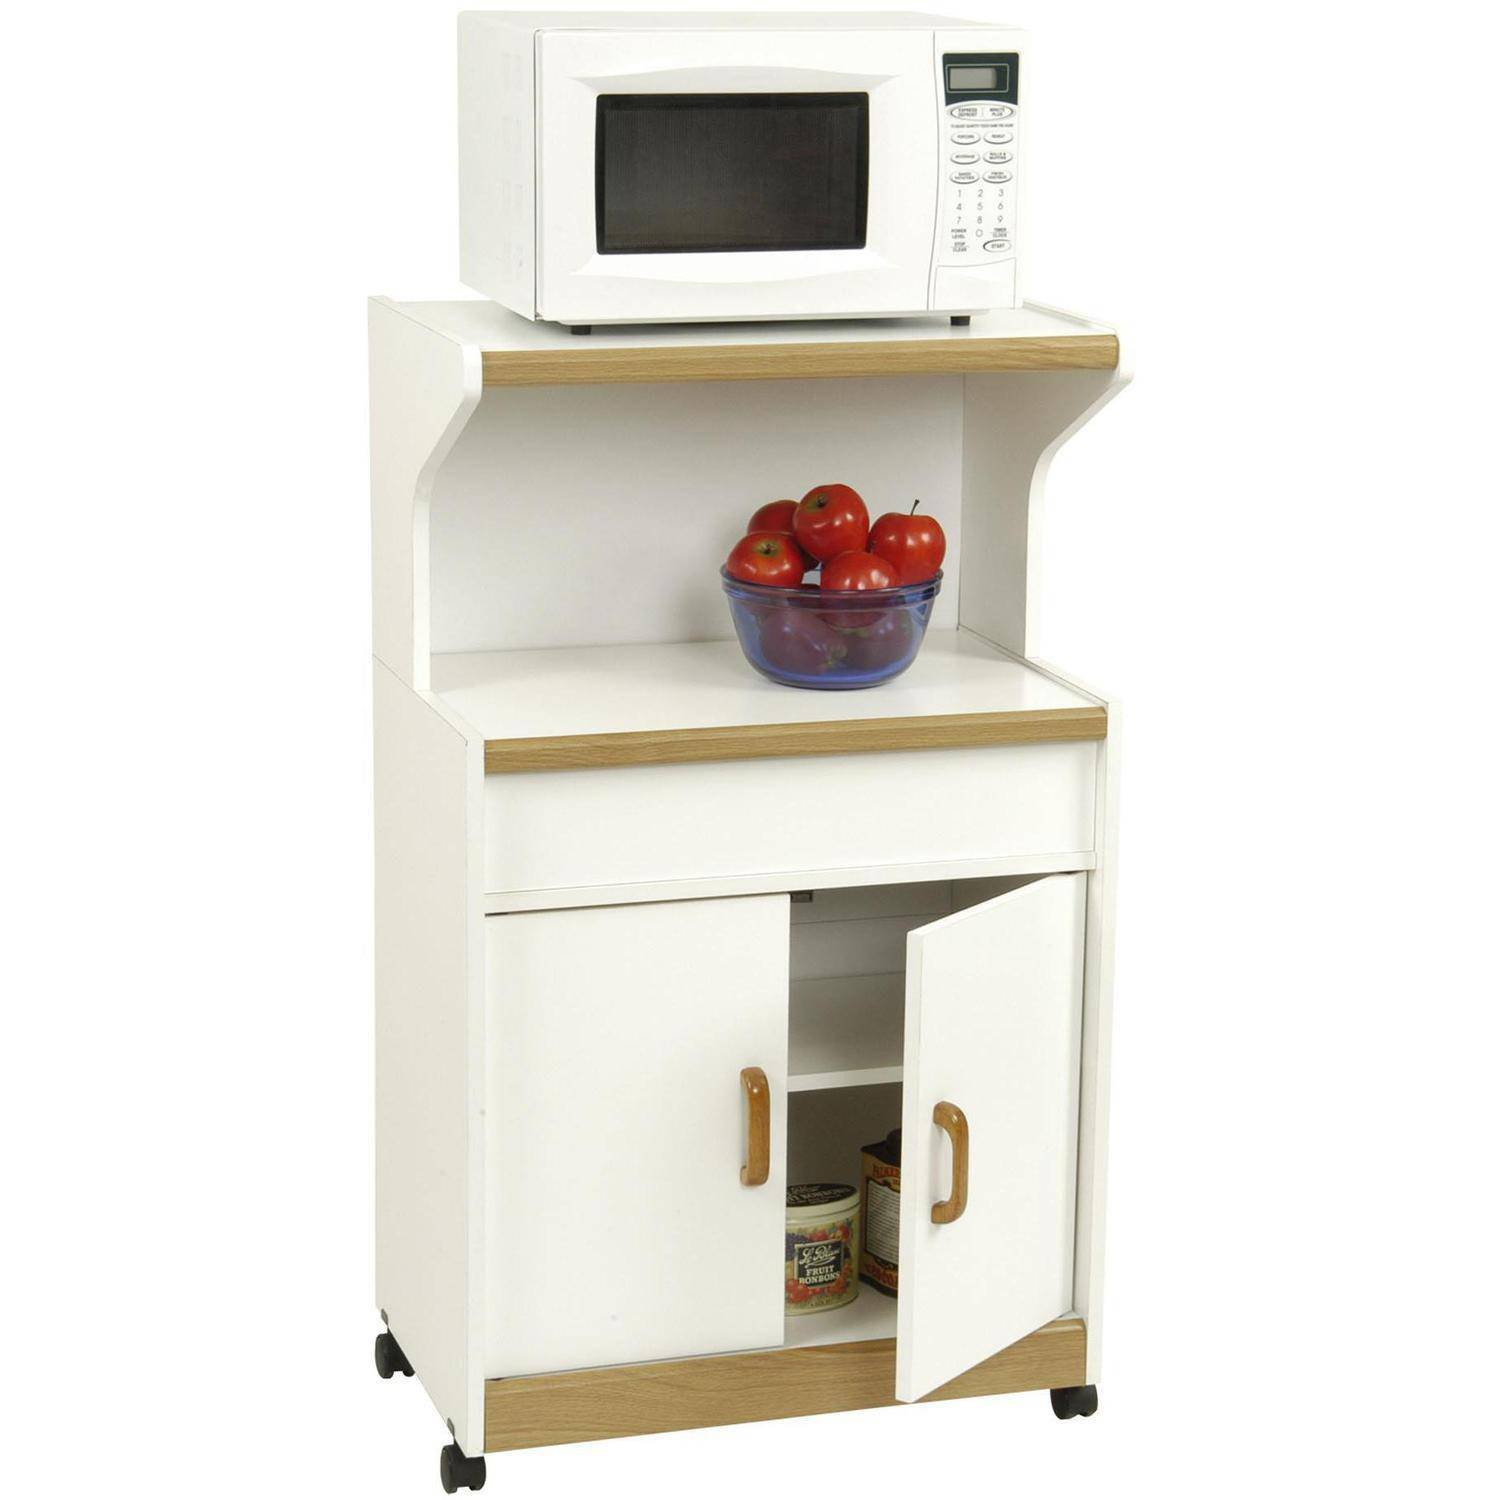 Amazon.com: Solid Wood Microwave Cabinet With Shelves (White ...